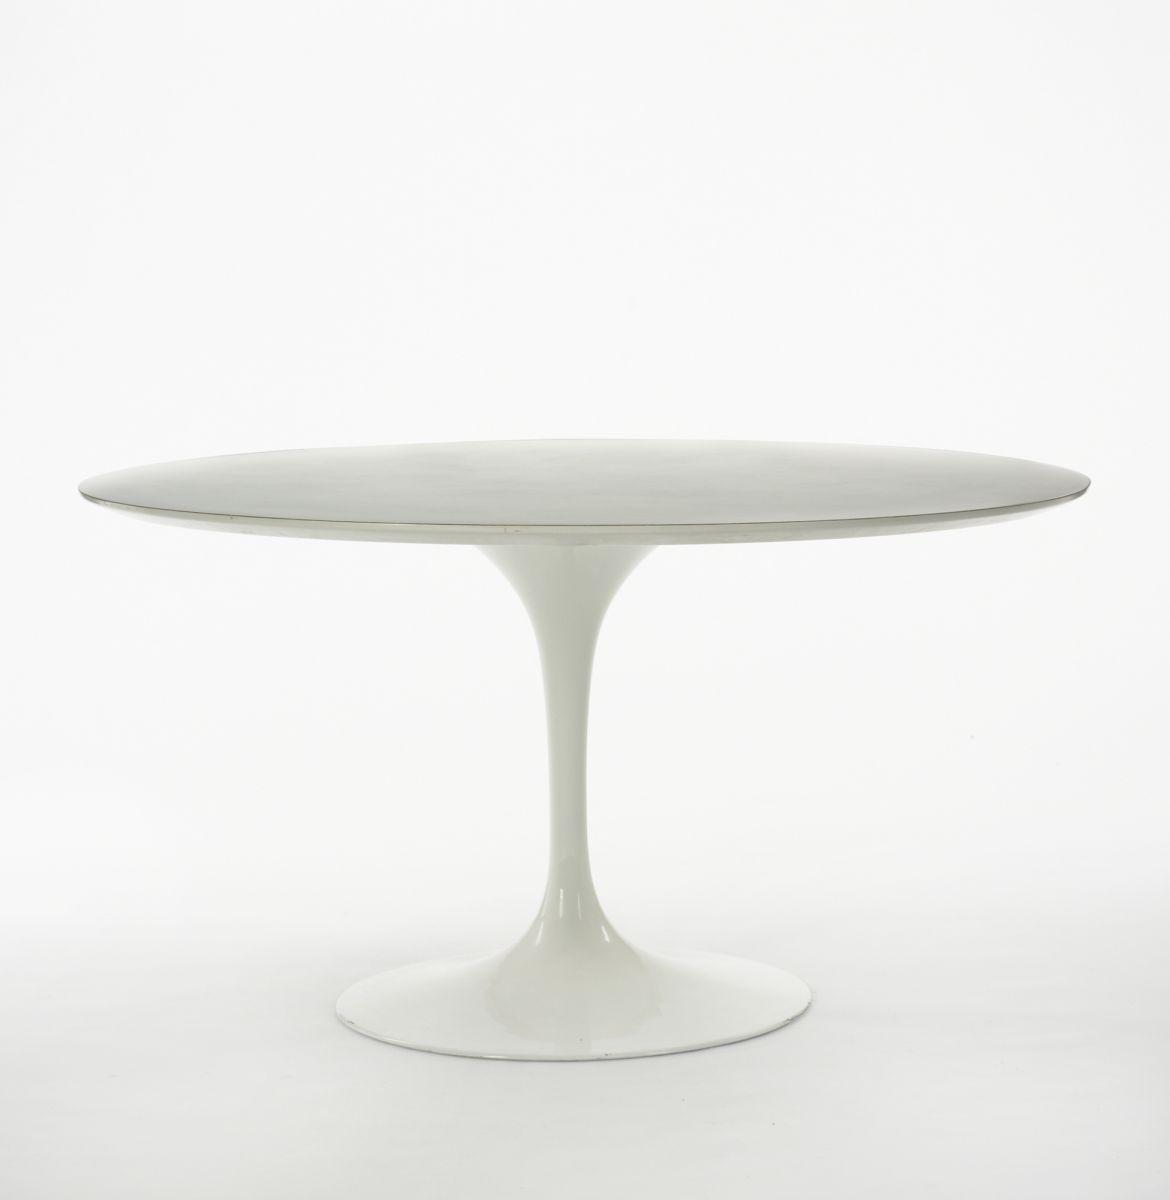 Pretty Eero Saarinen Tulip Table Whi Listed In Eero Saarinen Womb ...